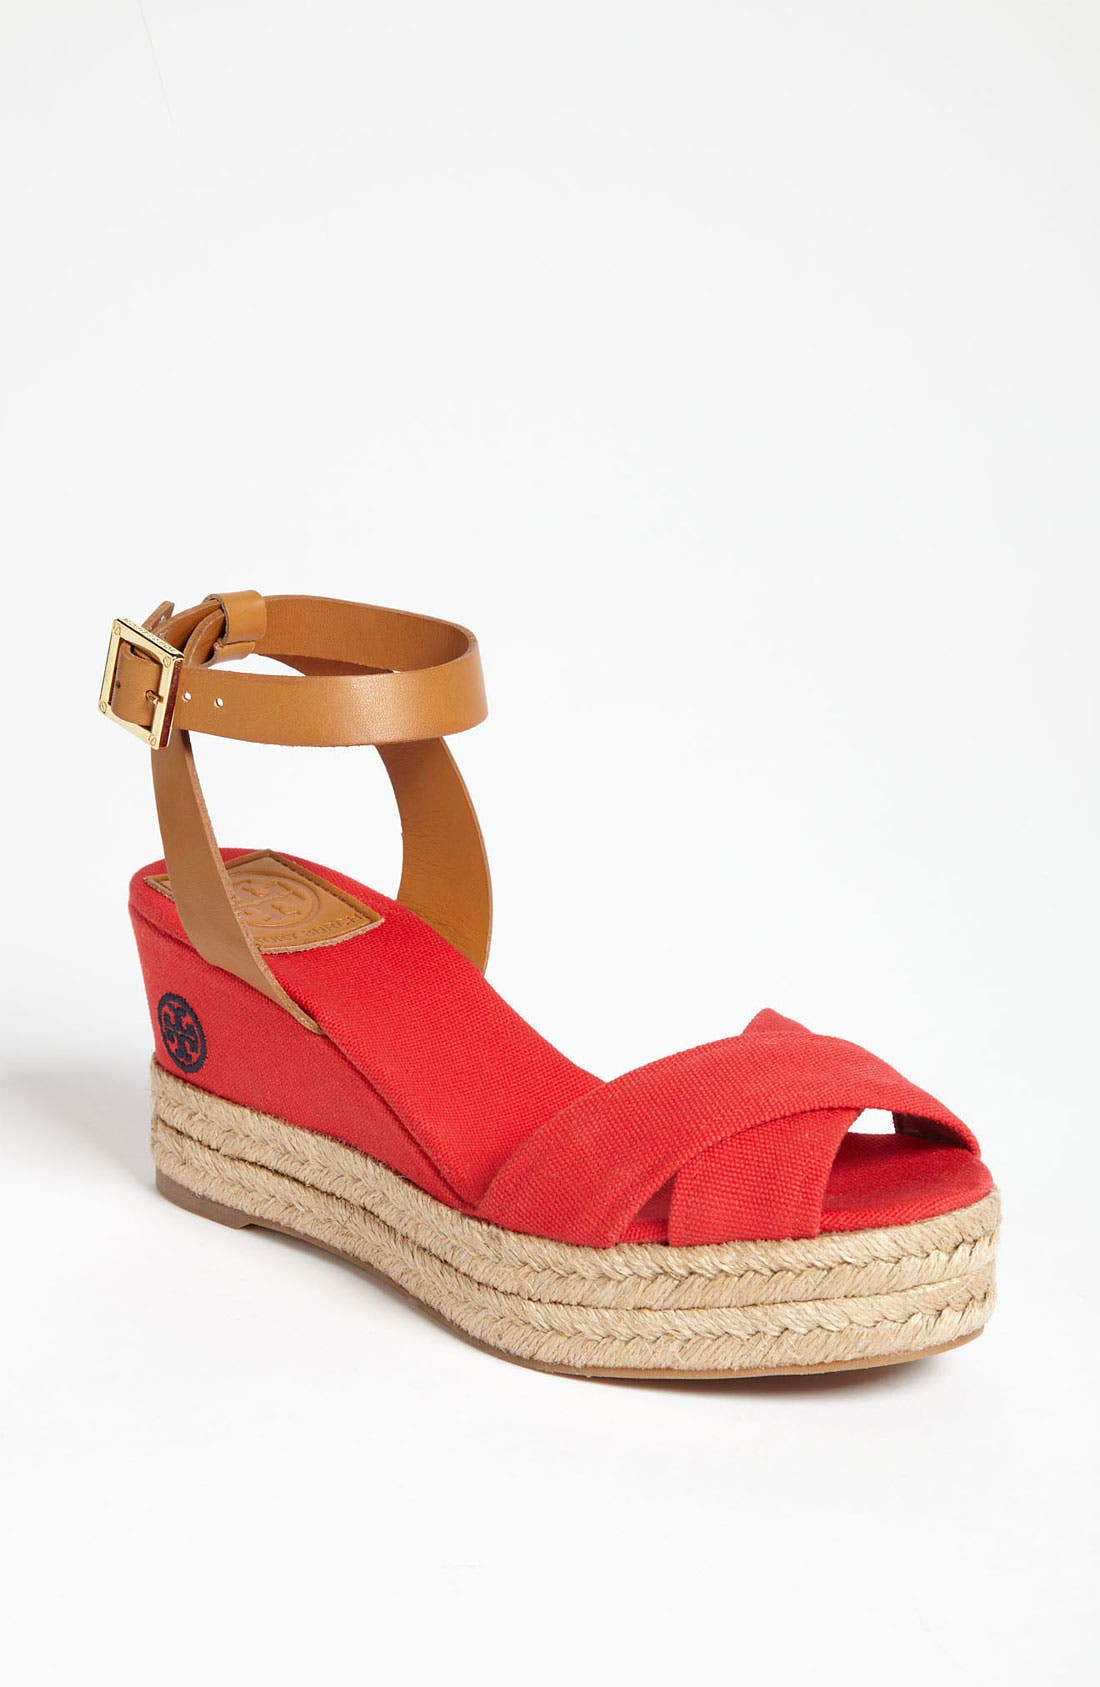 Alternate Image 1 Selected - Tory Burch 'Karissa' Espadrille